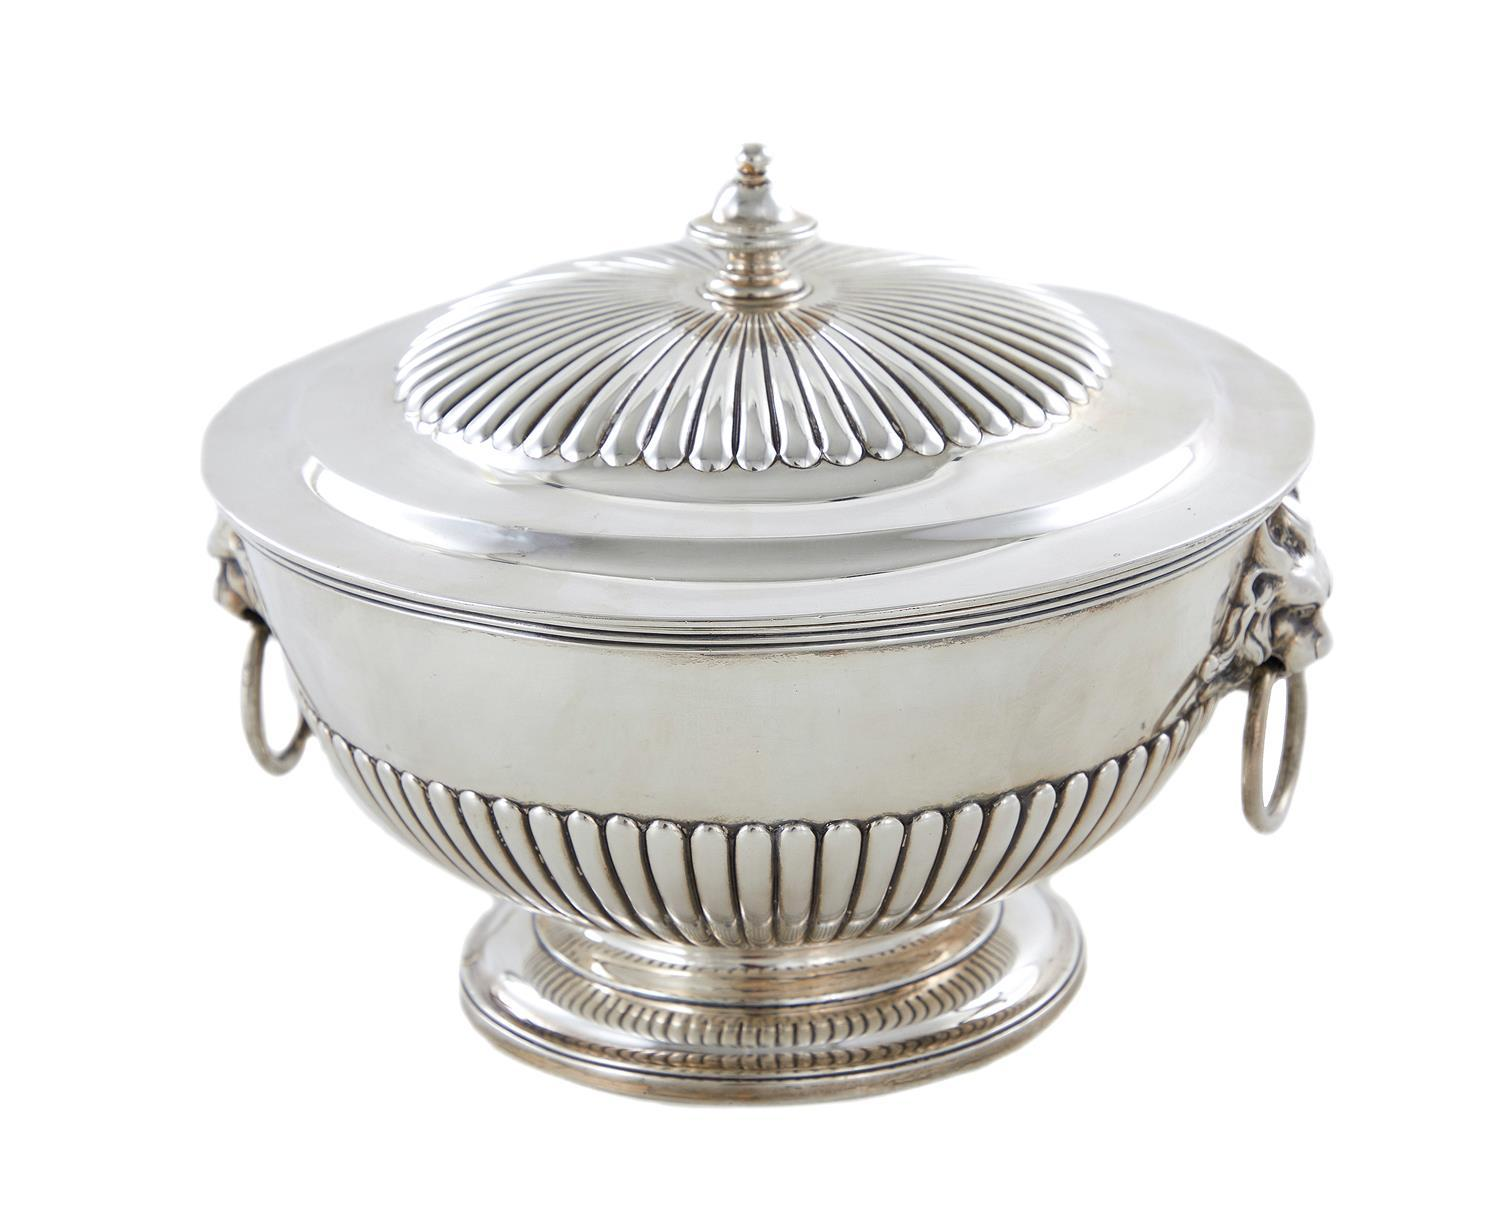 George IV silver bowl on pedestal with cover